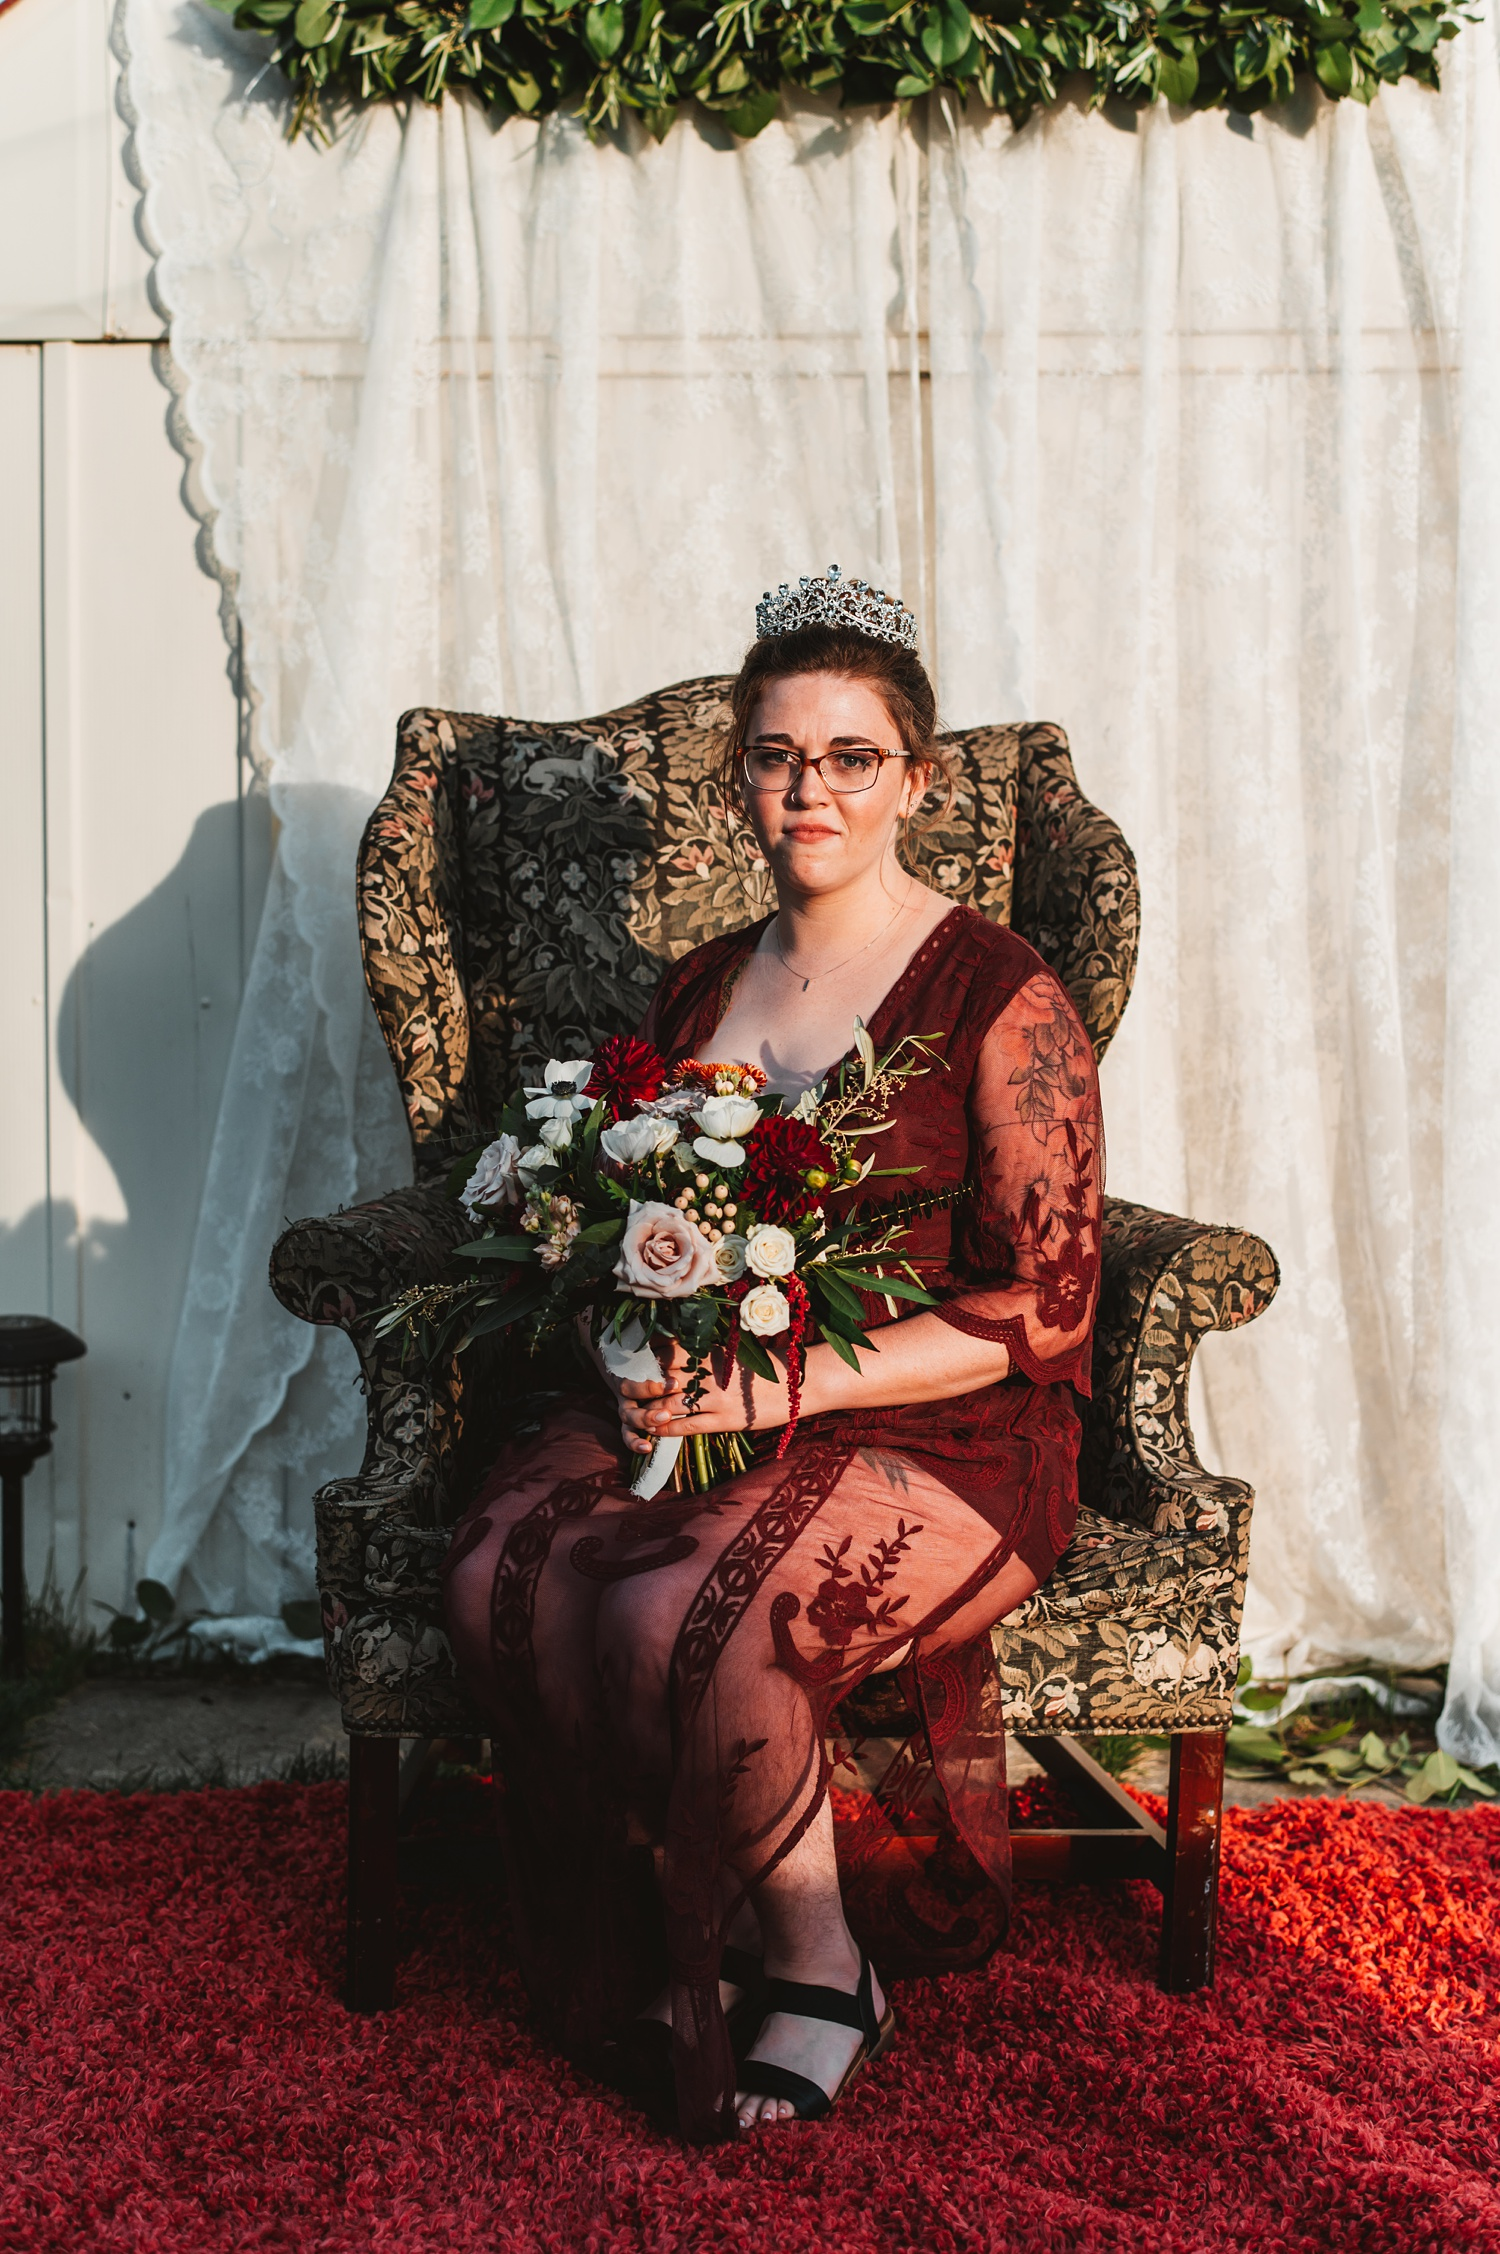 Pandemic Backyard Micro Wedding - The Adamkovi boho bride, crown, tattoos, armchair, burgundy dress